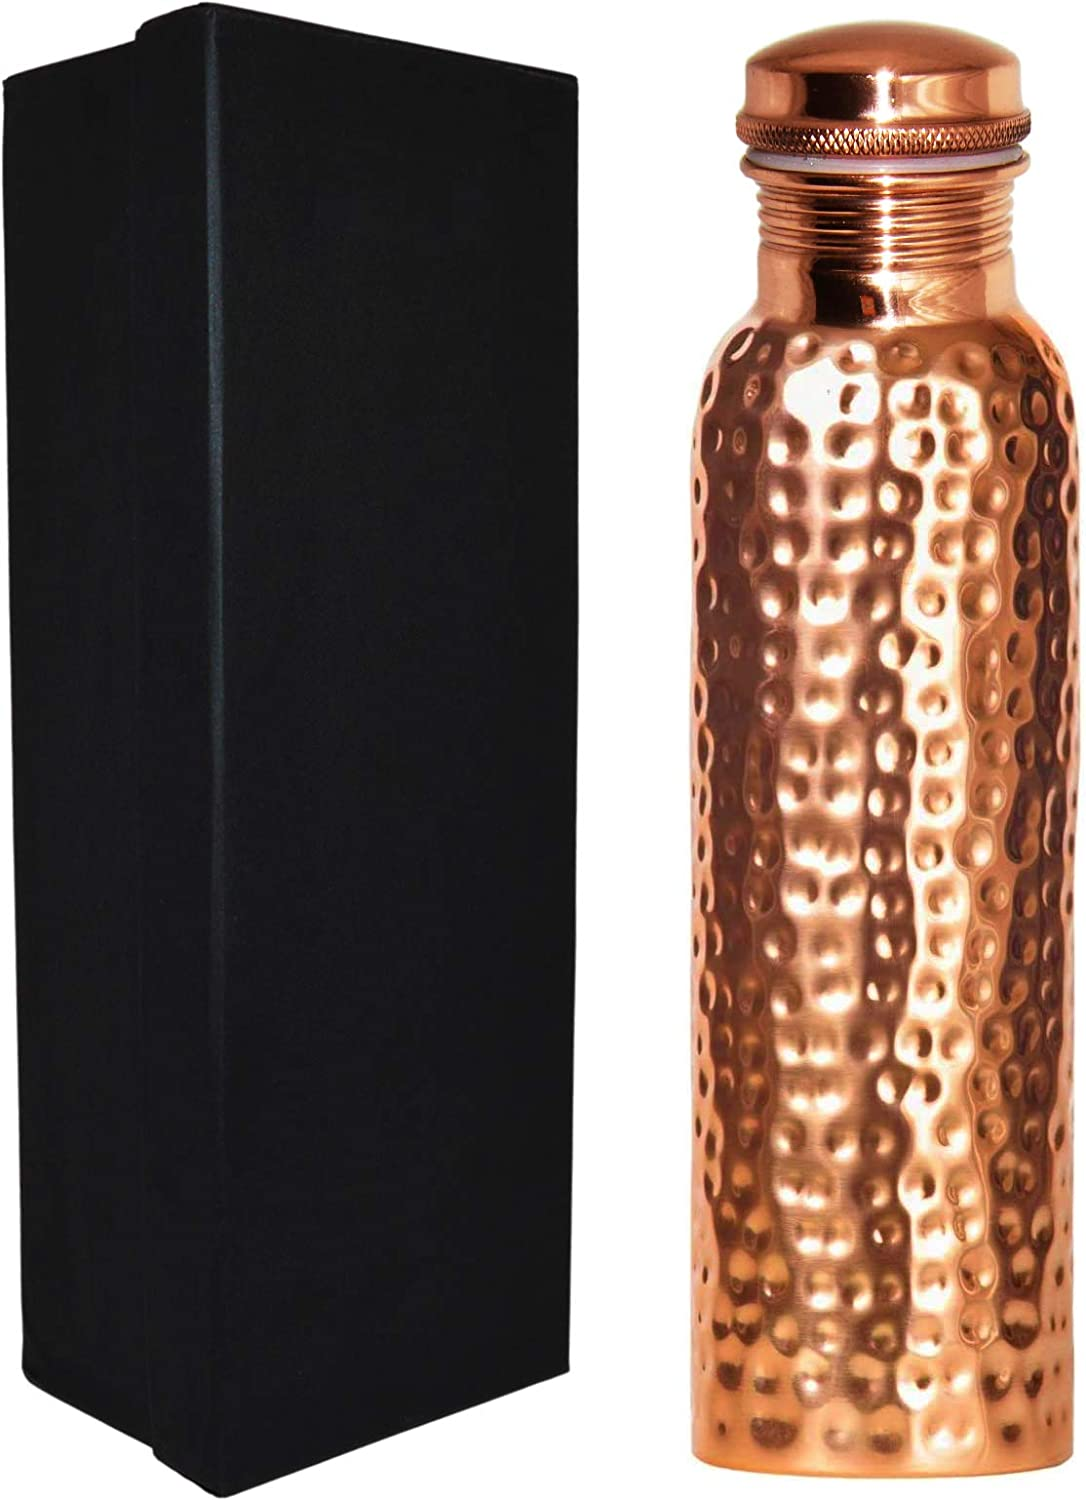 SciencePurchase 30 Ounce Pure Copper Drinking Vessel in Elegant Gift Box, Hammered Water Bottle with Screw-On Cap, Ayurvedic Benefits